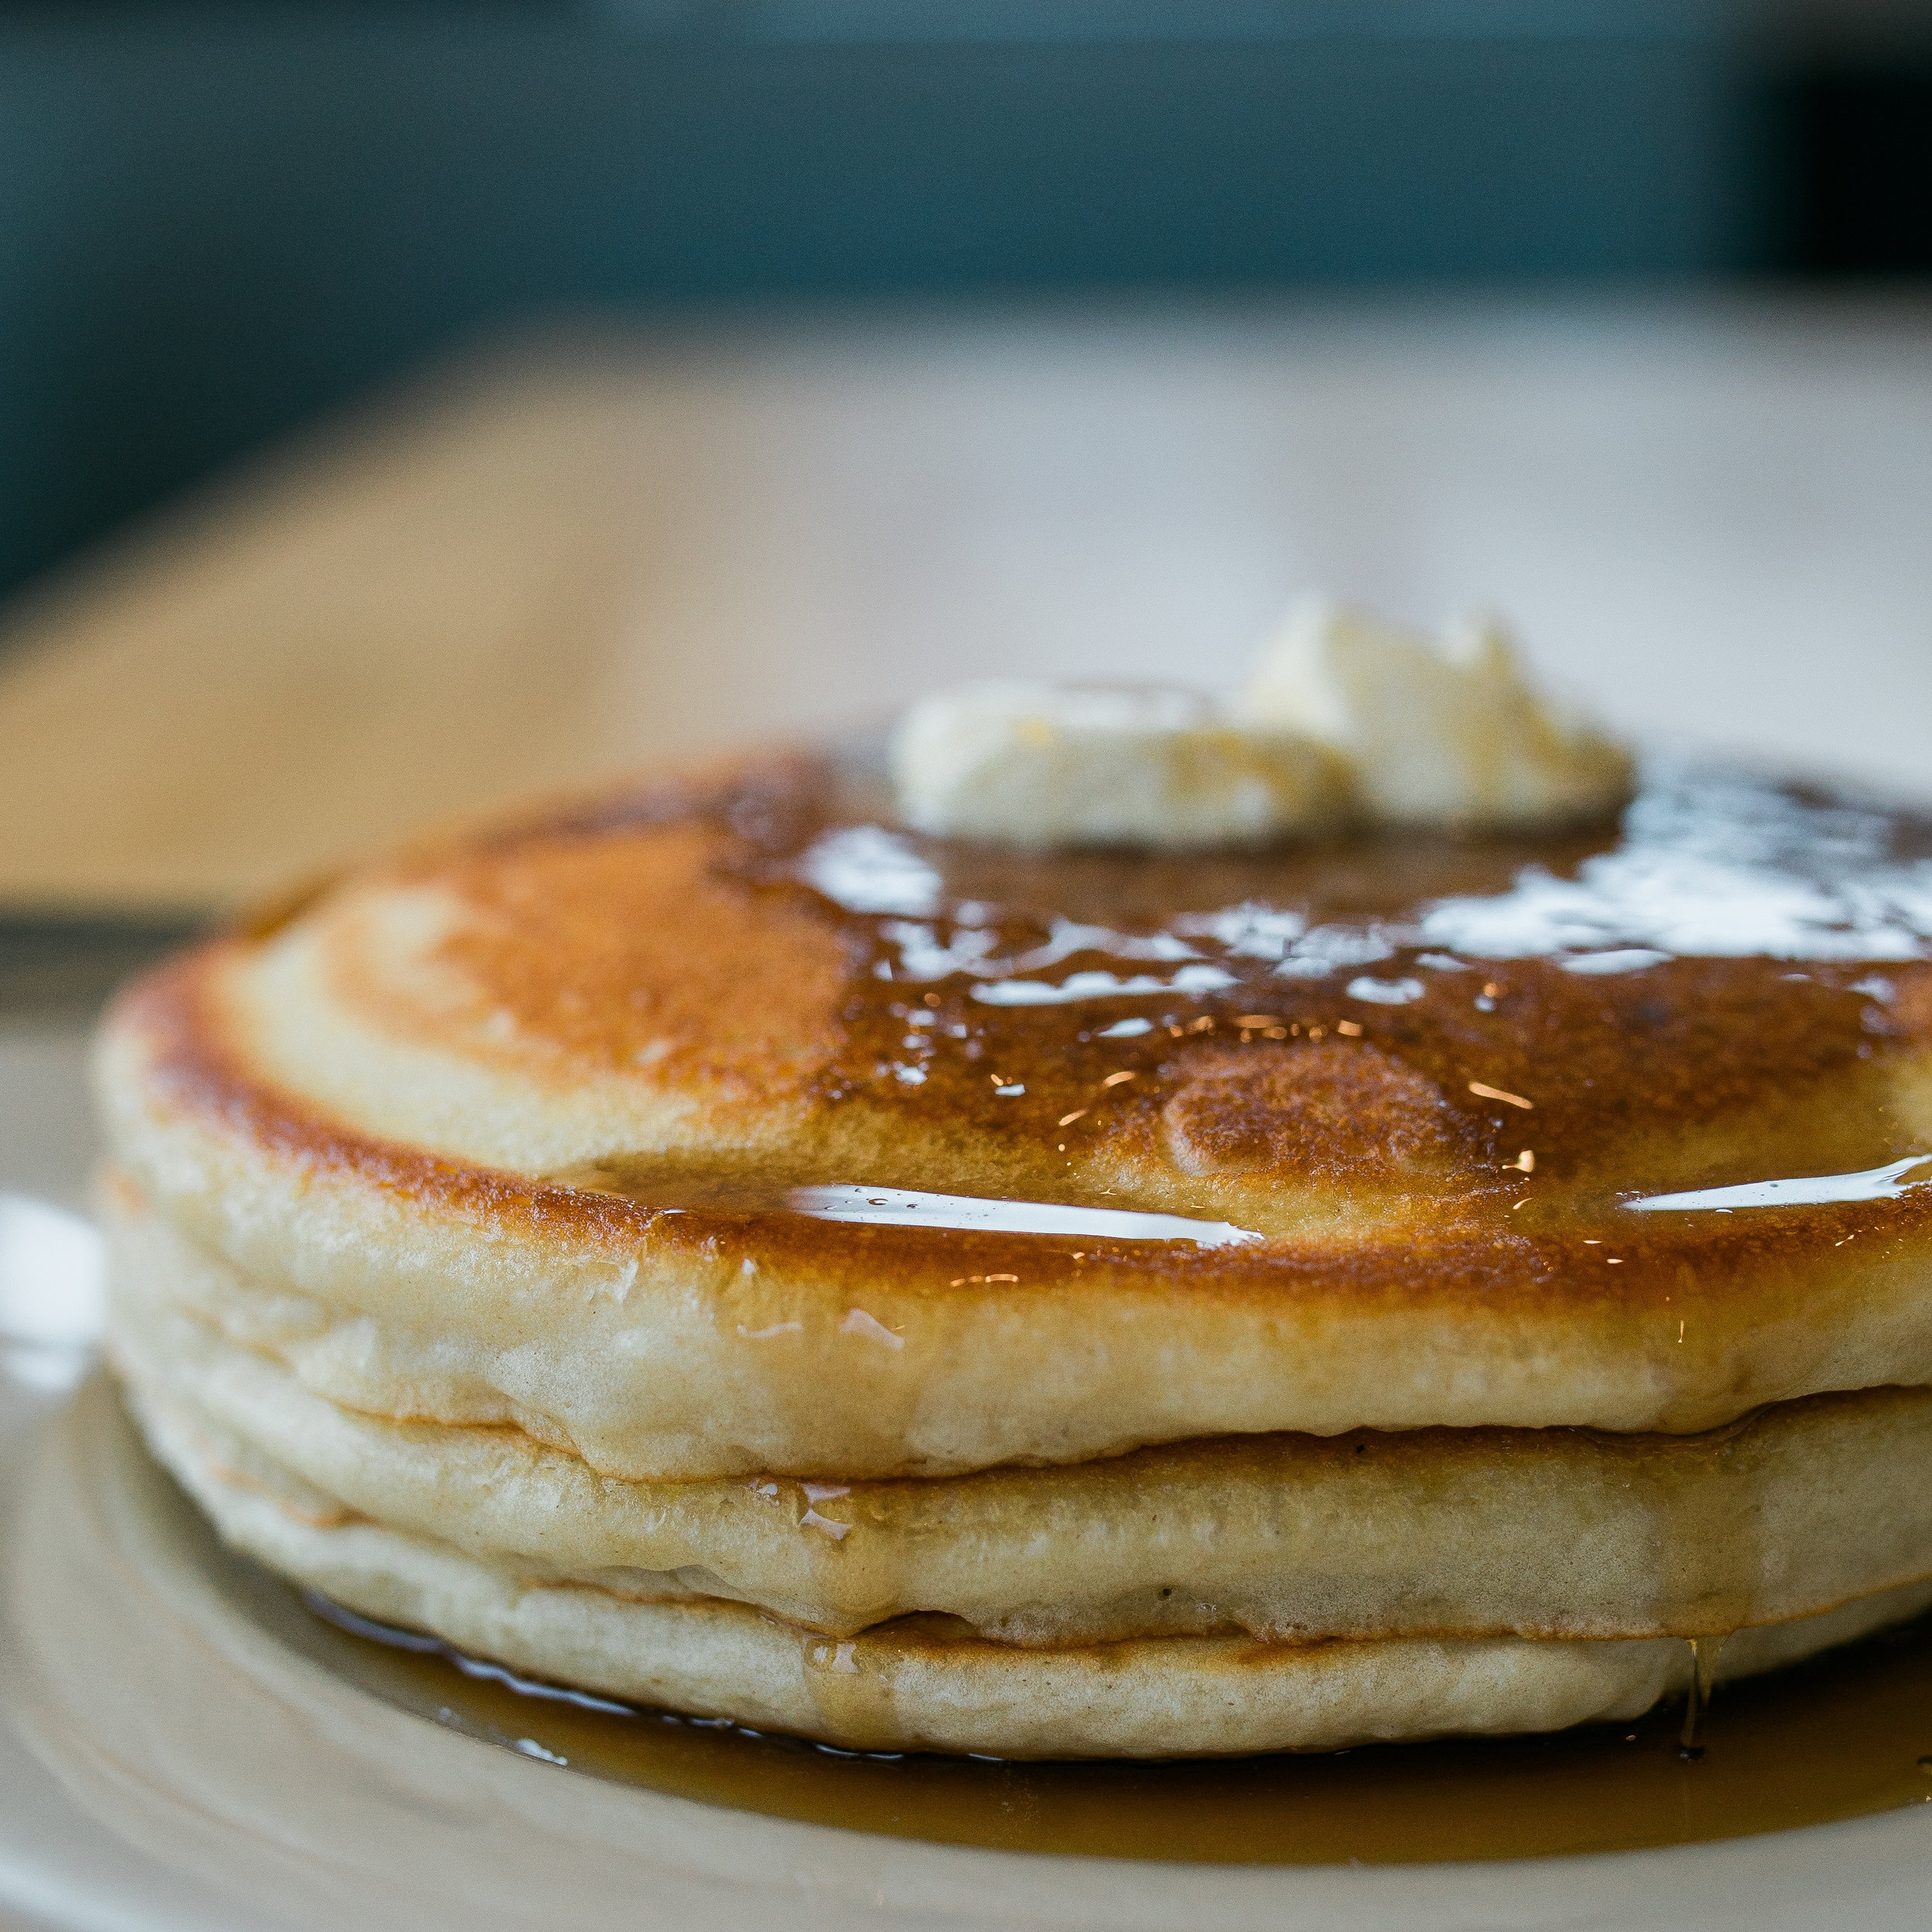 pancakes with maple syrup.jpg